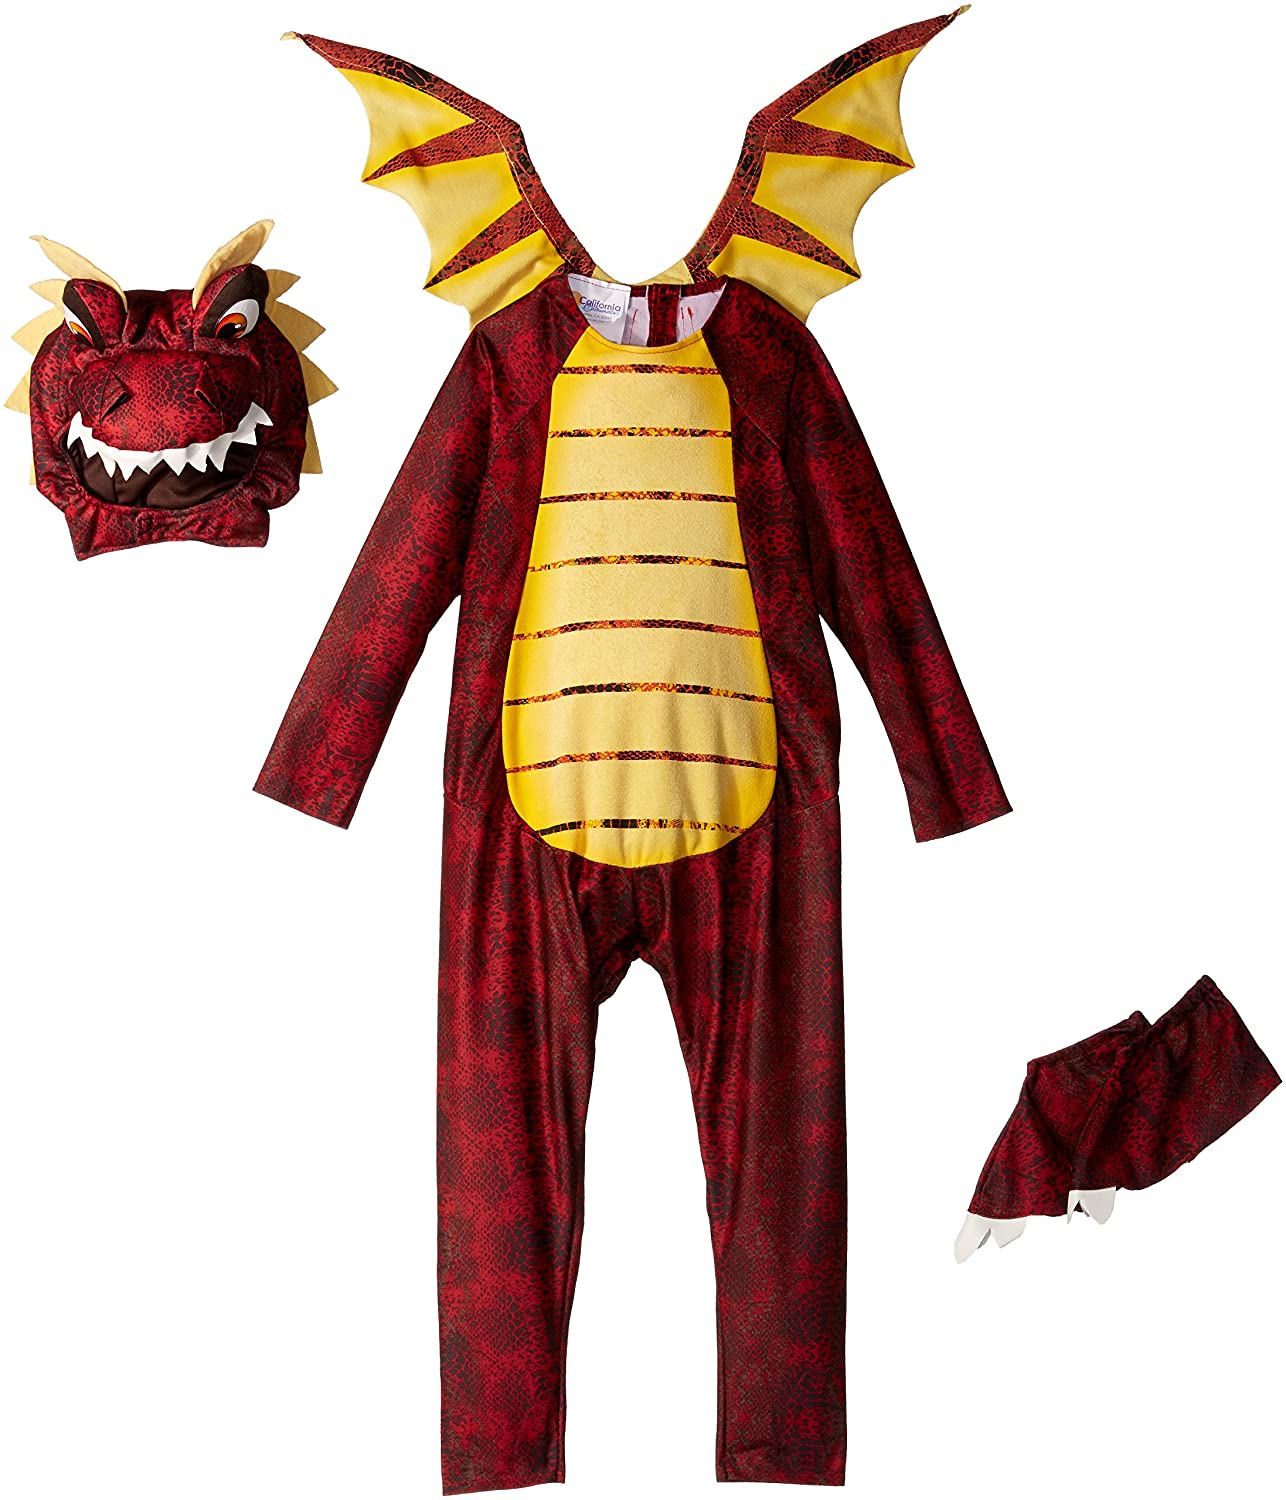 amazoncom california costumes fire breathing dragon toddler costume 4 6 toys games - Dragon Toddler Halloween Costume